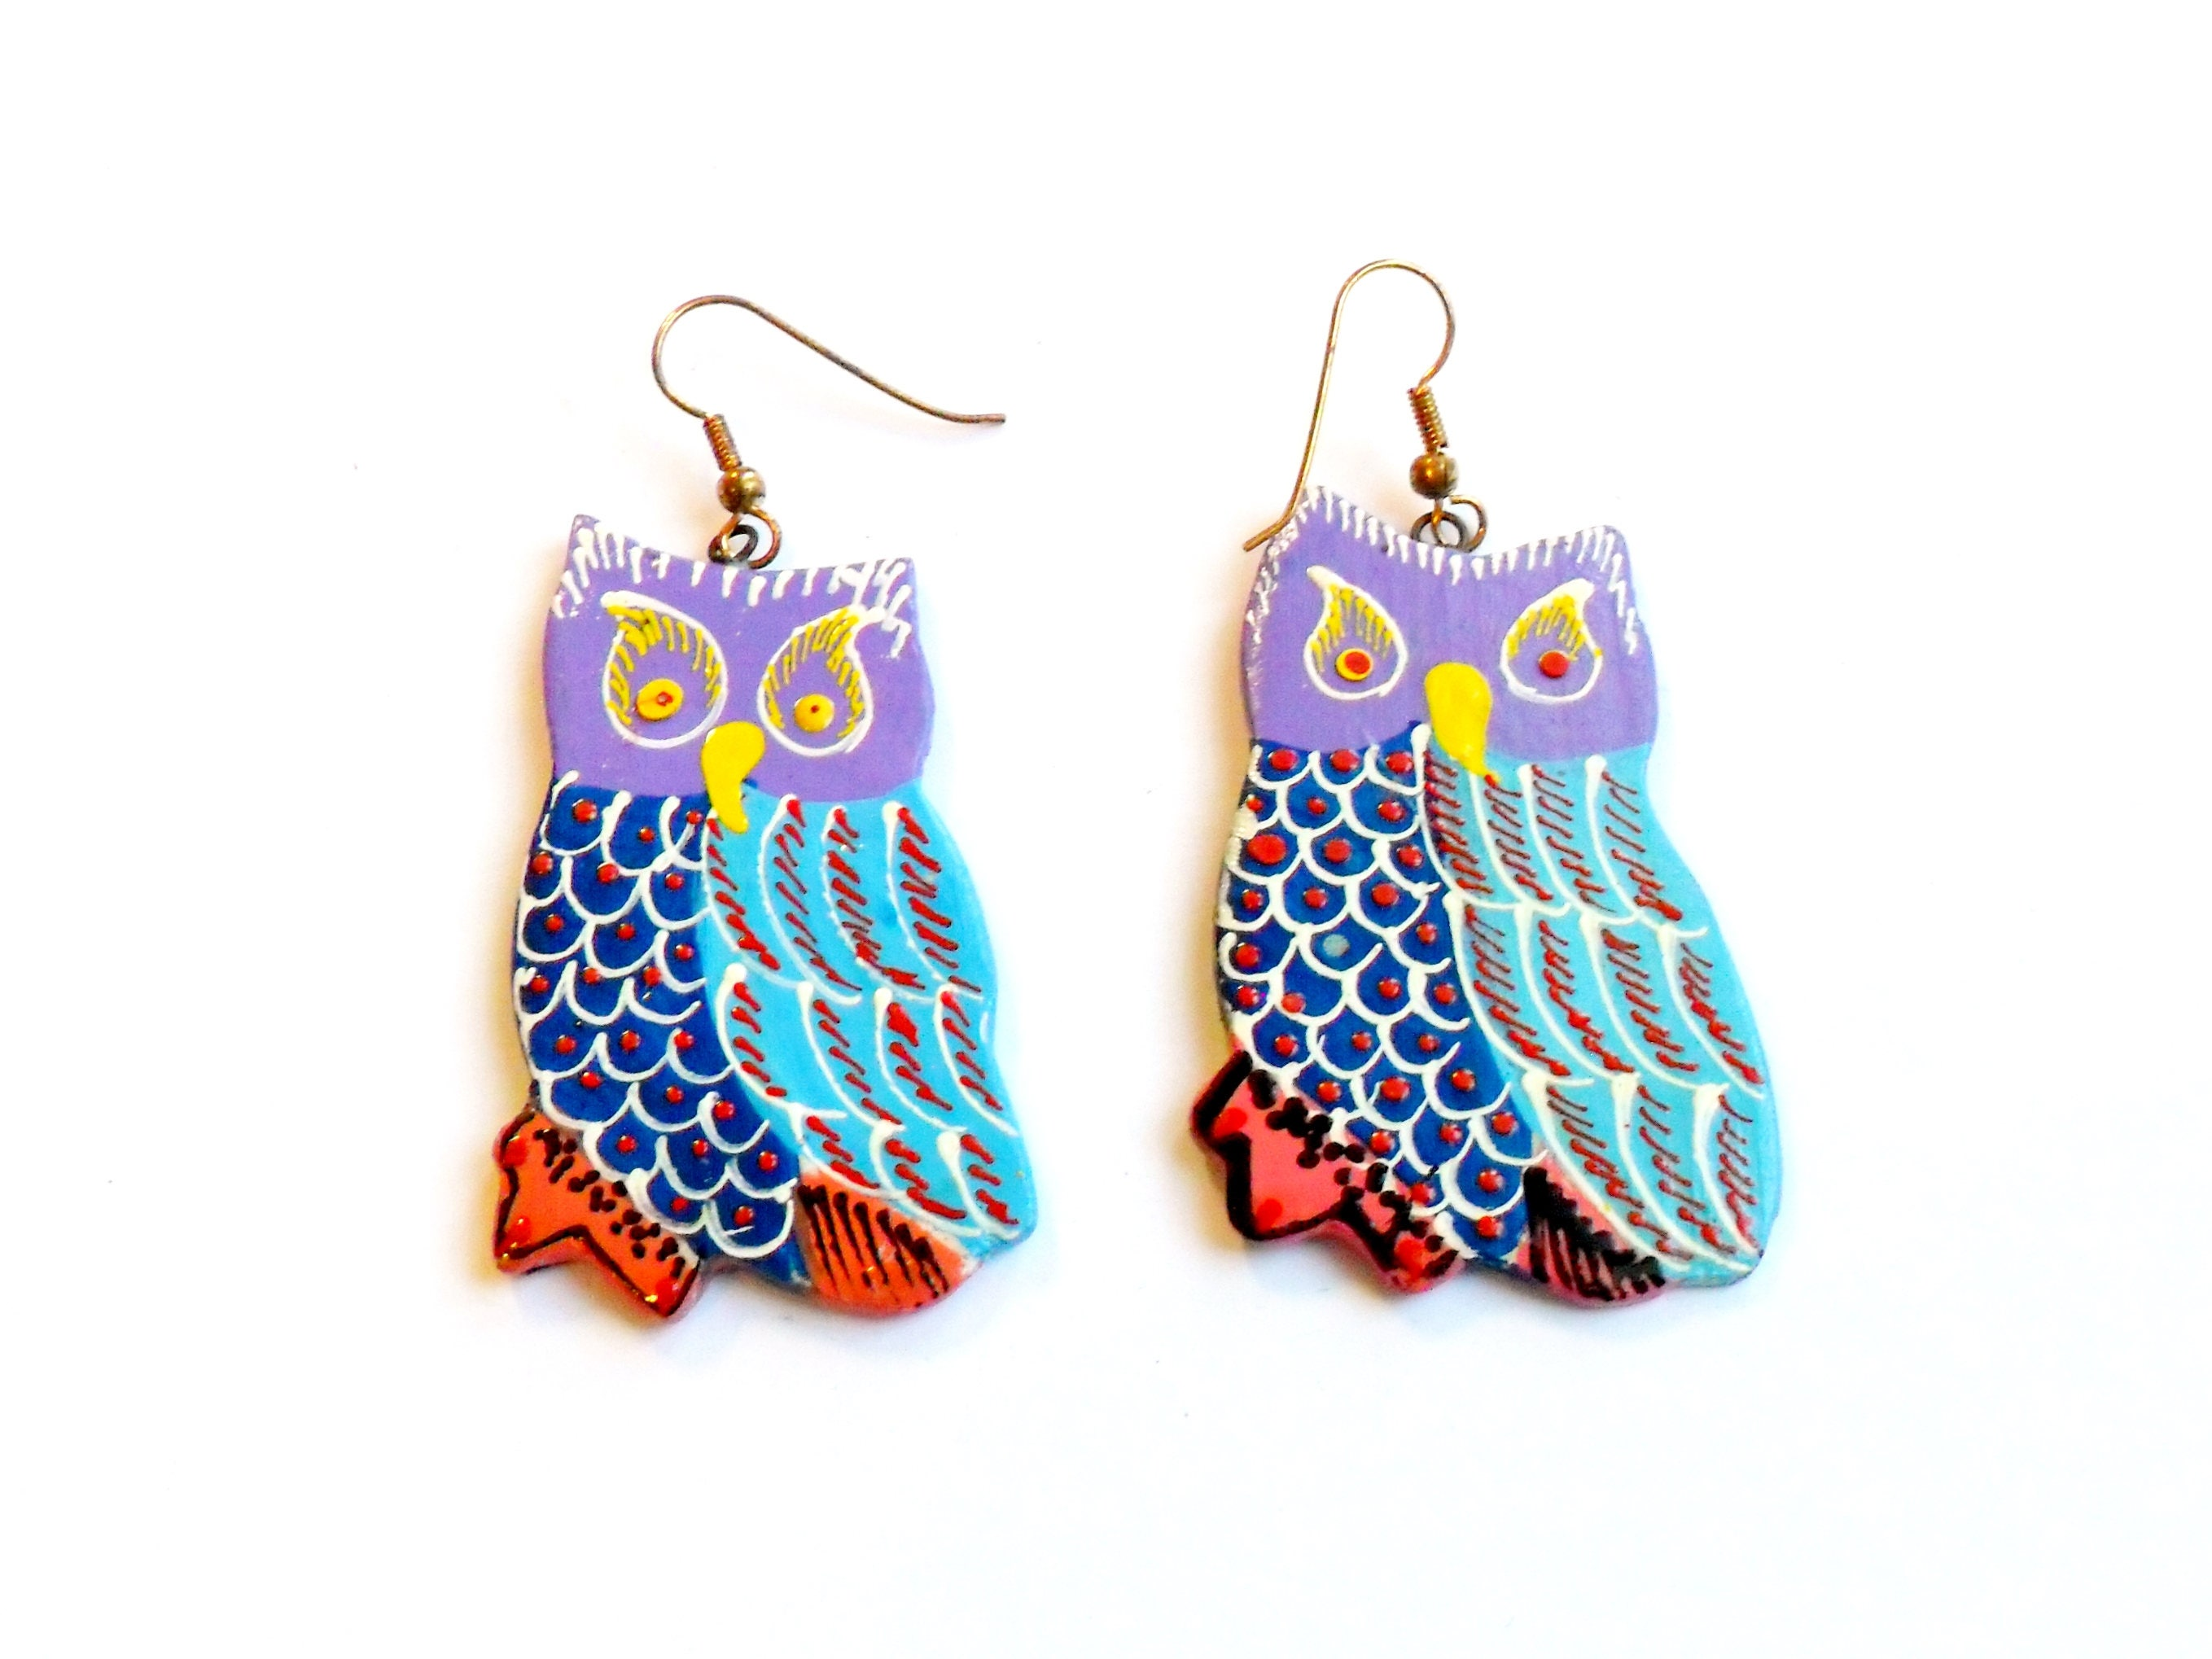 earrings artsy painted collections artworks wooden hand products earring